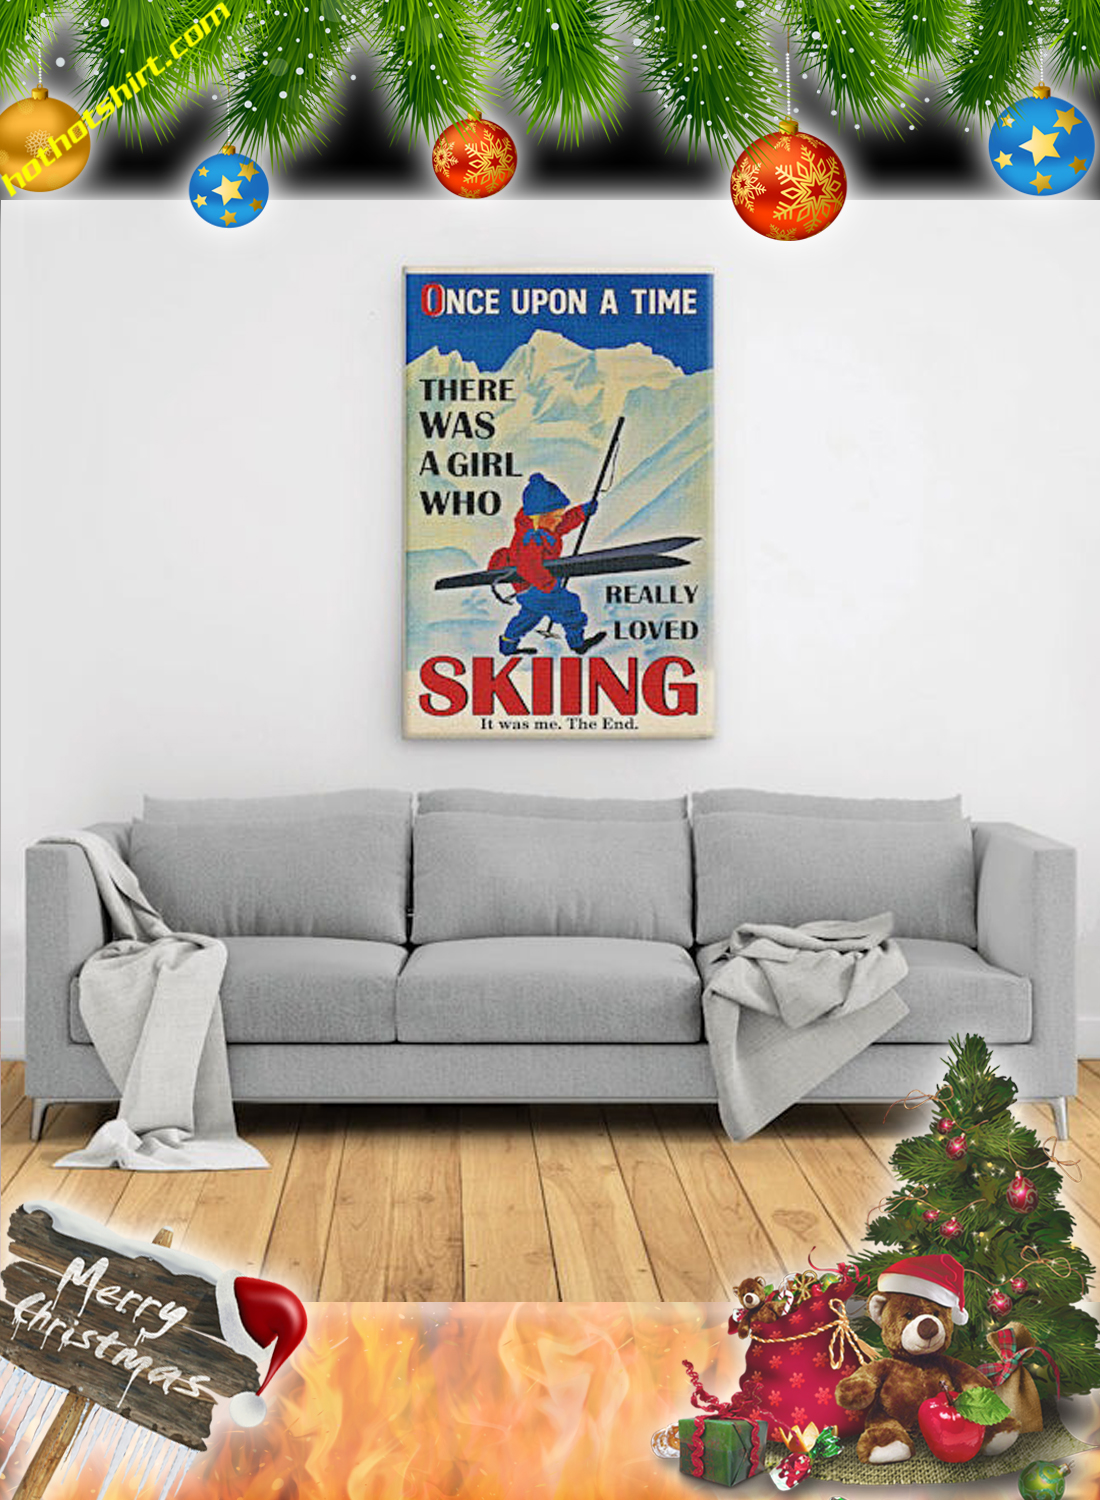 Once upon a time there was a girl who really loved skiing it was me the end canvas print and poster 3